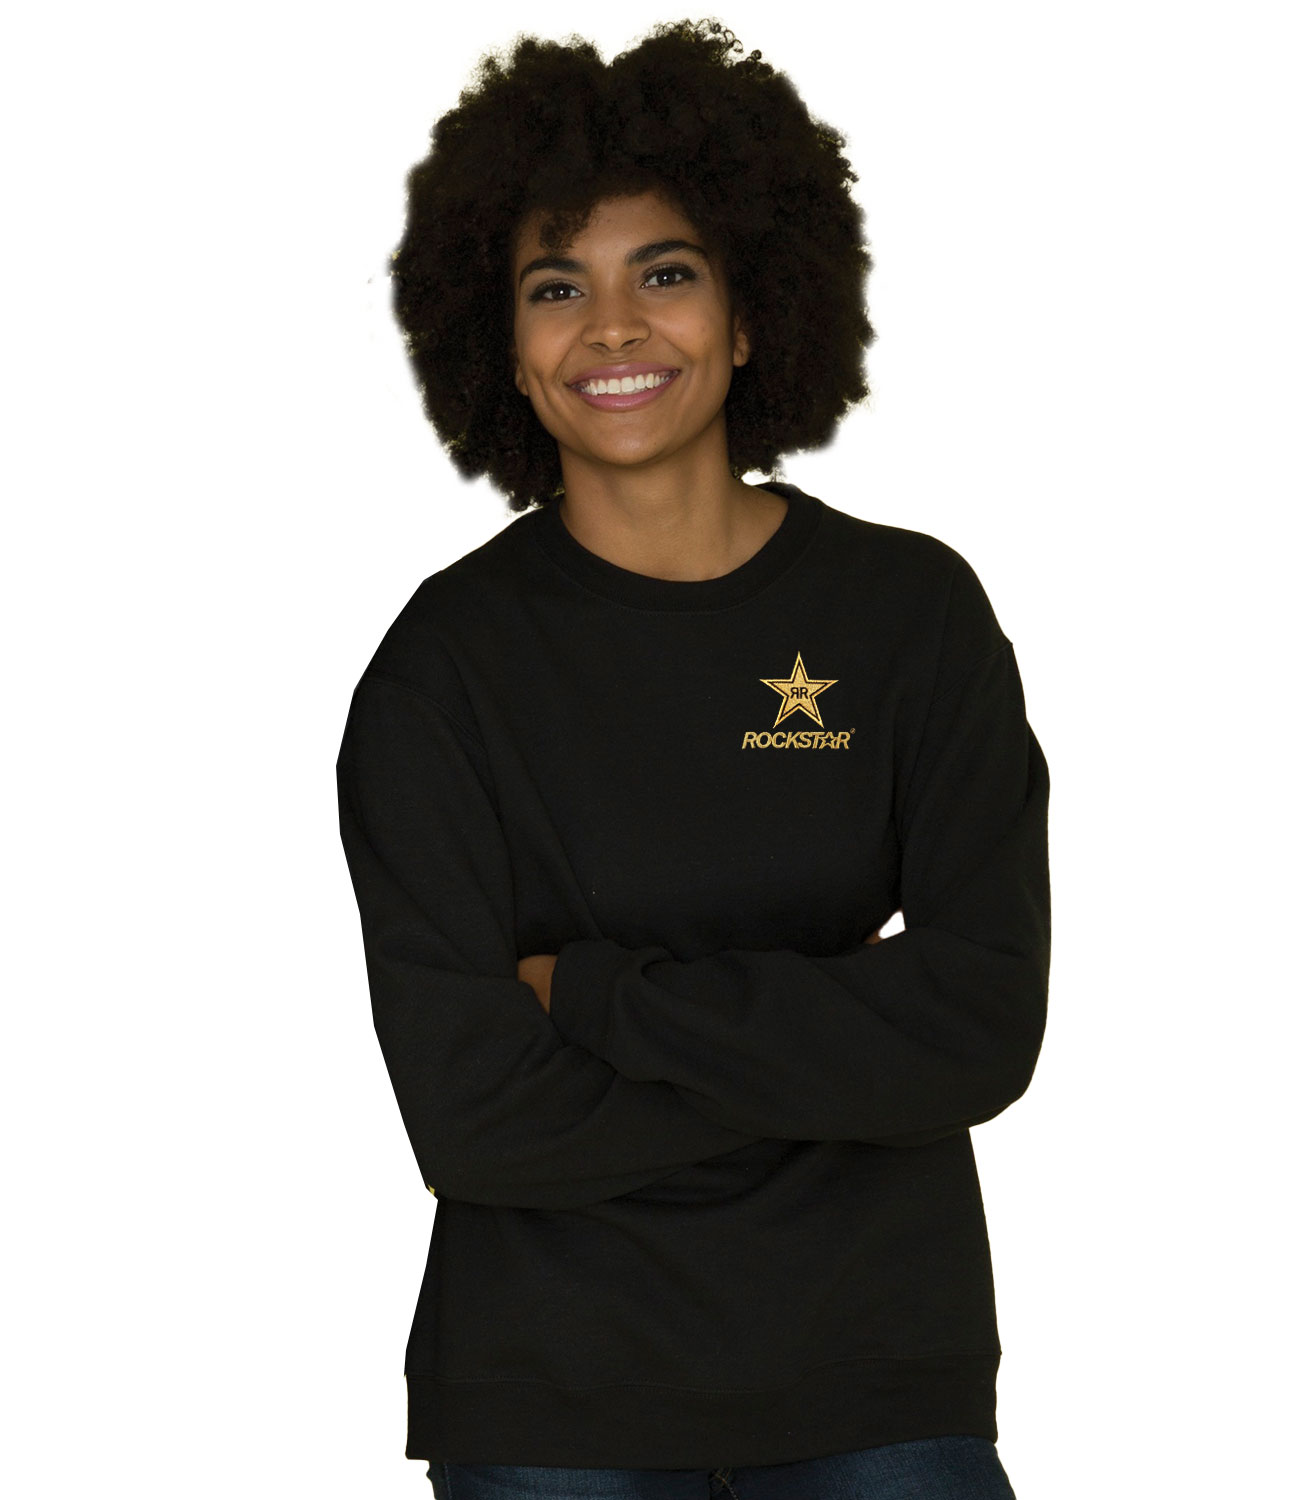 EVERYDAY FLEECE CREWNECK SWEATSHIRT - ROCKSTAR